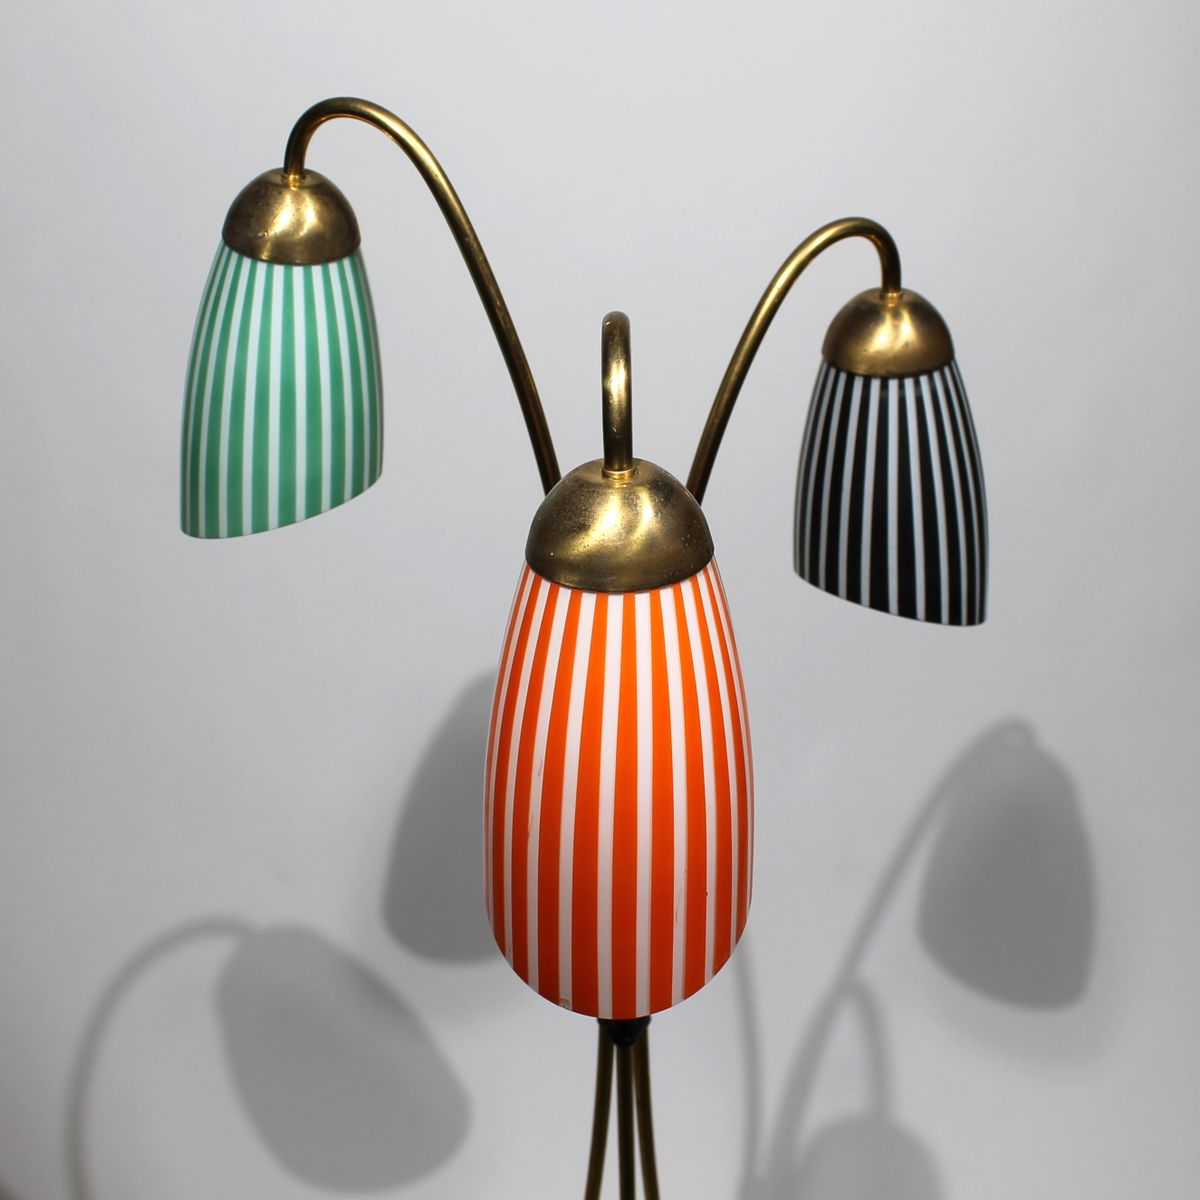 Tripod Brass Floor Lamp With Glass Shades, 1950s For Sale